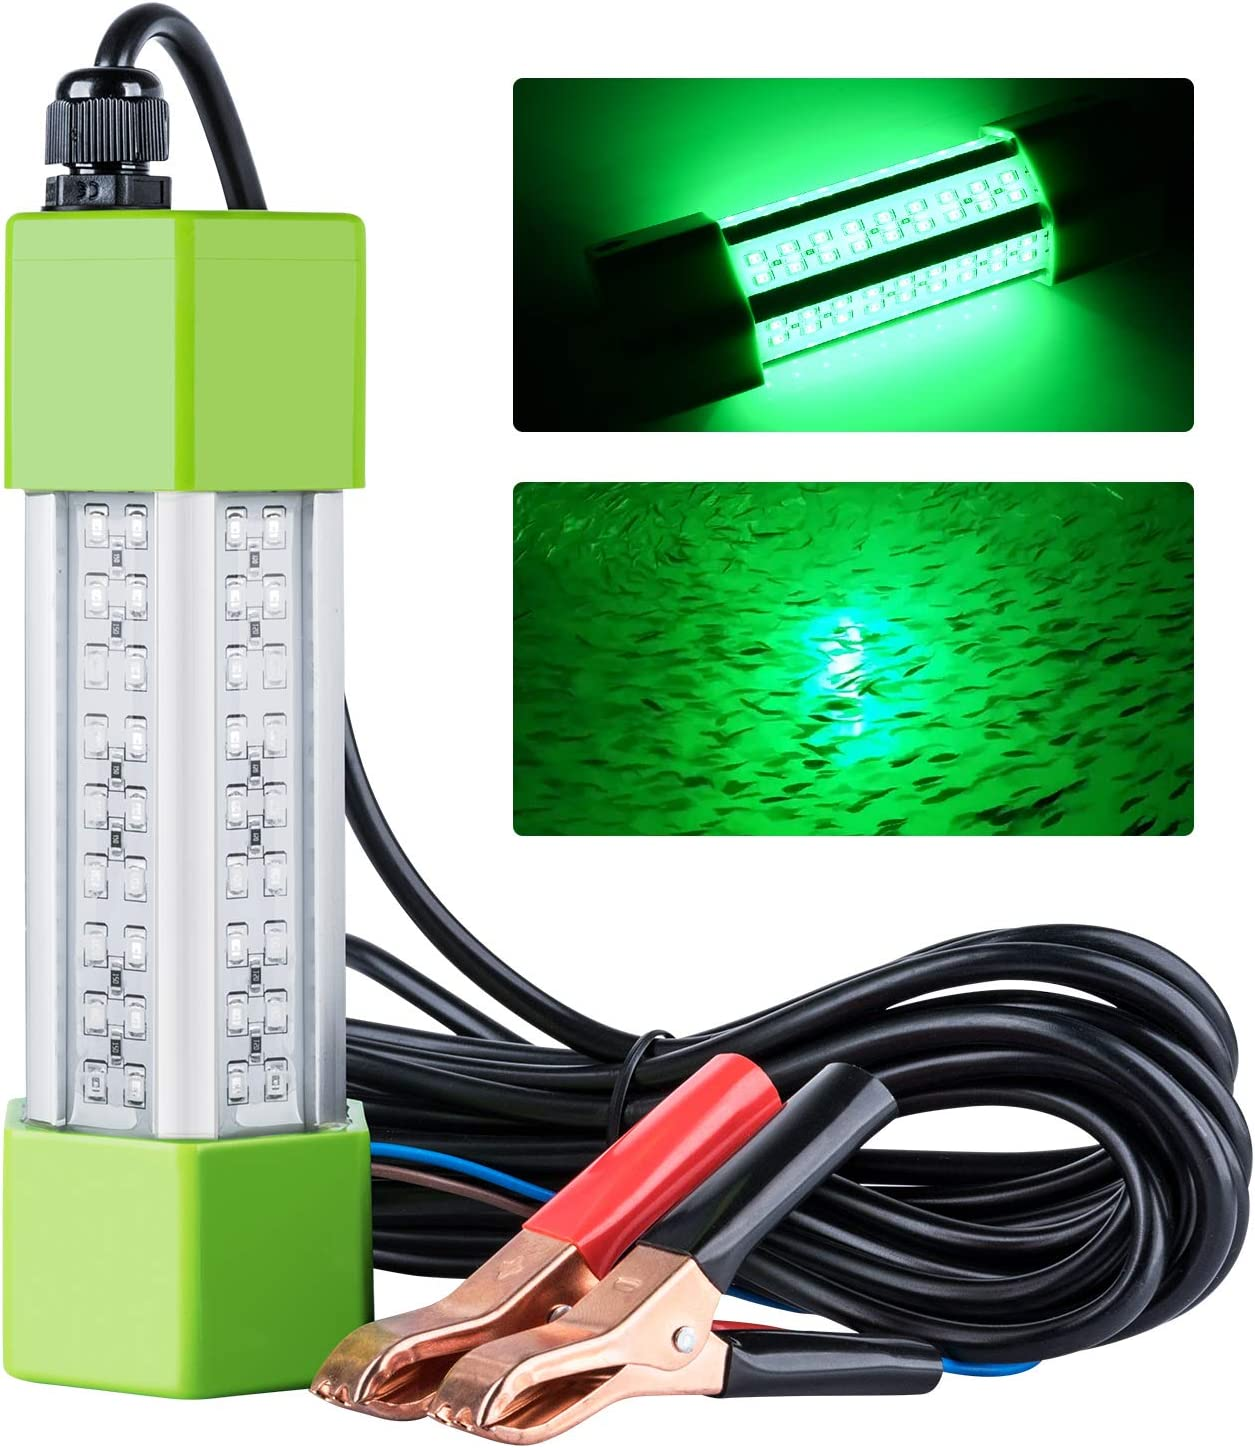 12 LED Fish Finding Trap Lamp Underwater Fishing Attracts Lure Bait Lights